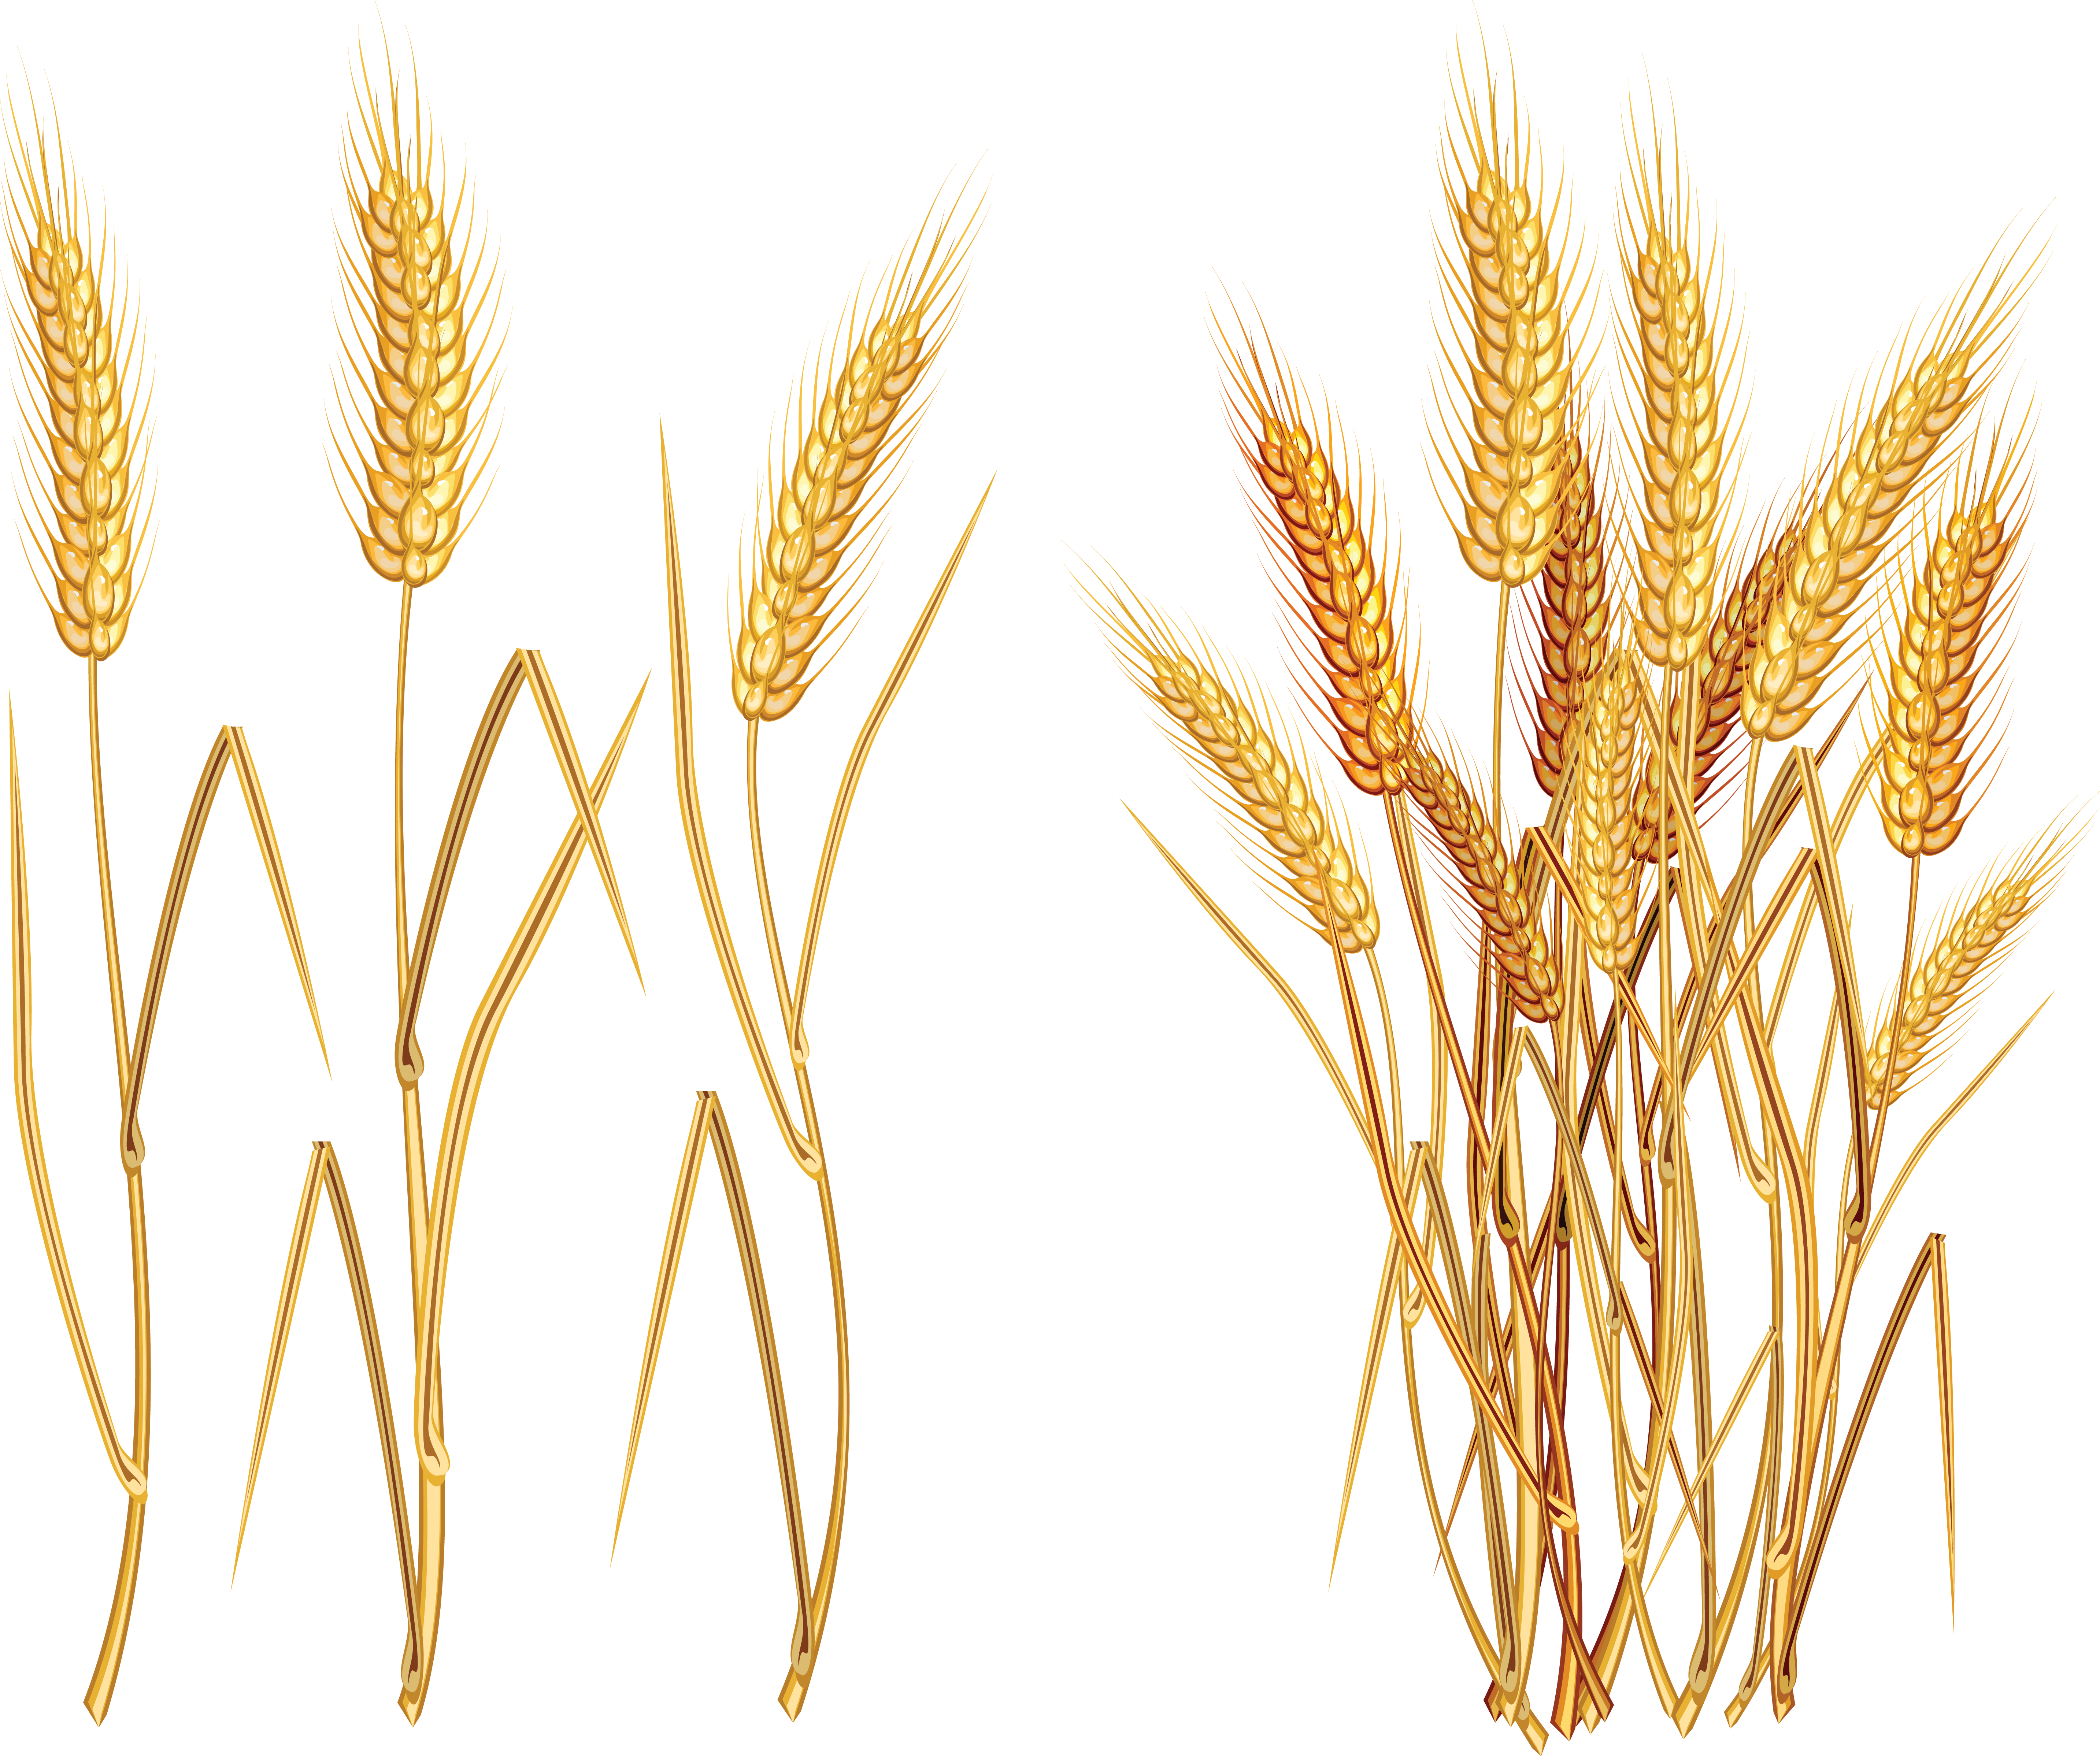 Wheat clipart wheat plant. Png image purepng free